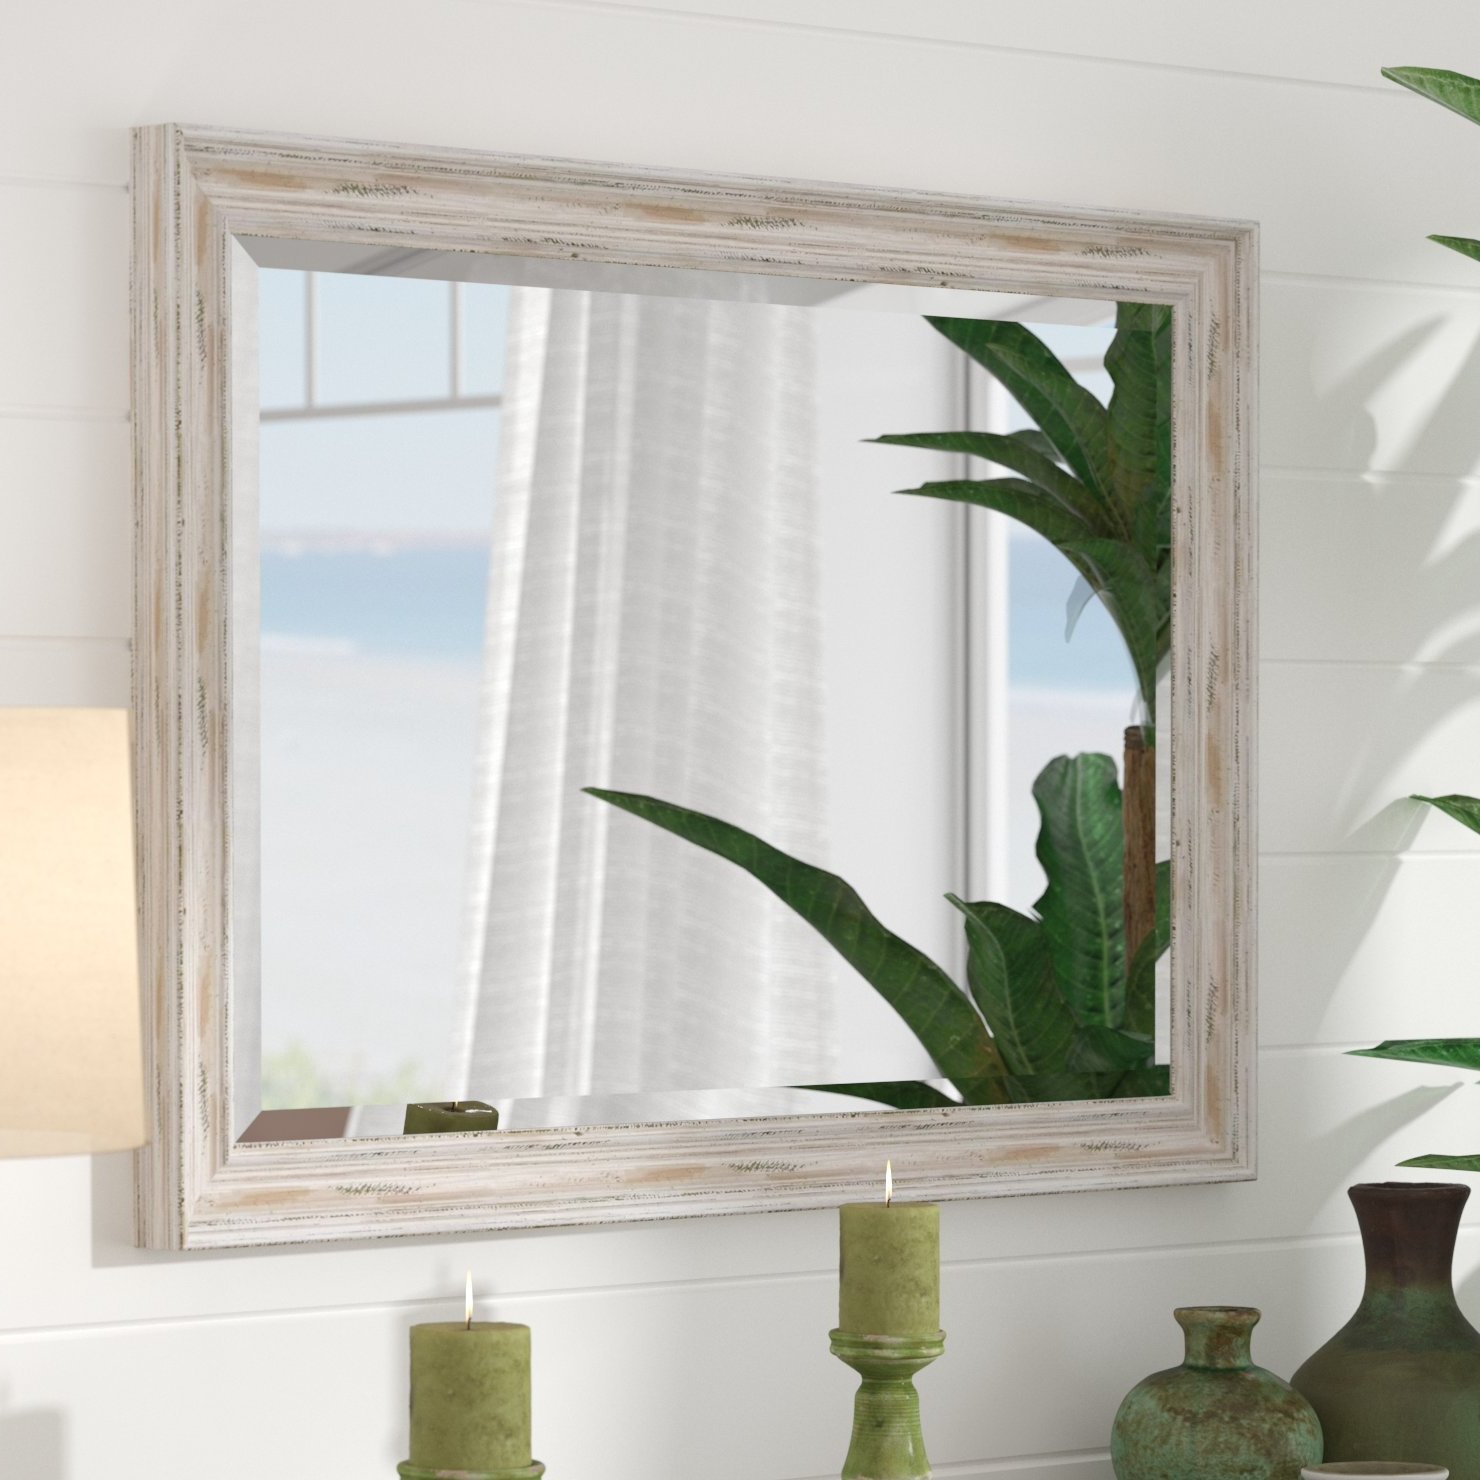 Fashionable Beachy Wall Mirrors Throughout Beachy Beveled Distressed Bathroom/vanity Mirror (View 3 of 20)